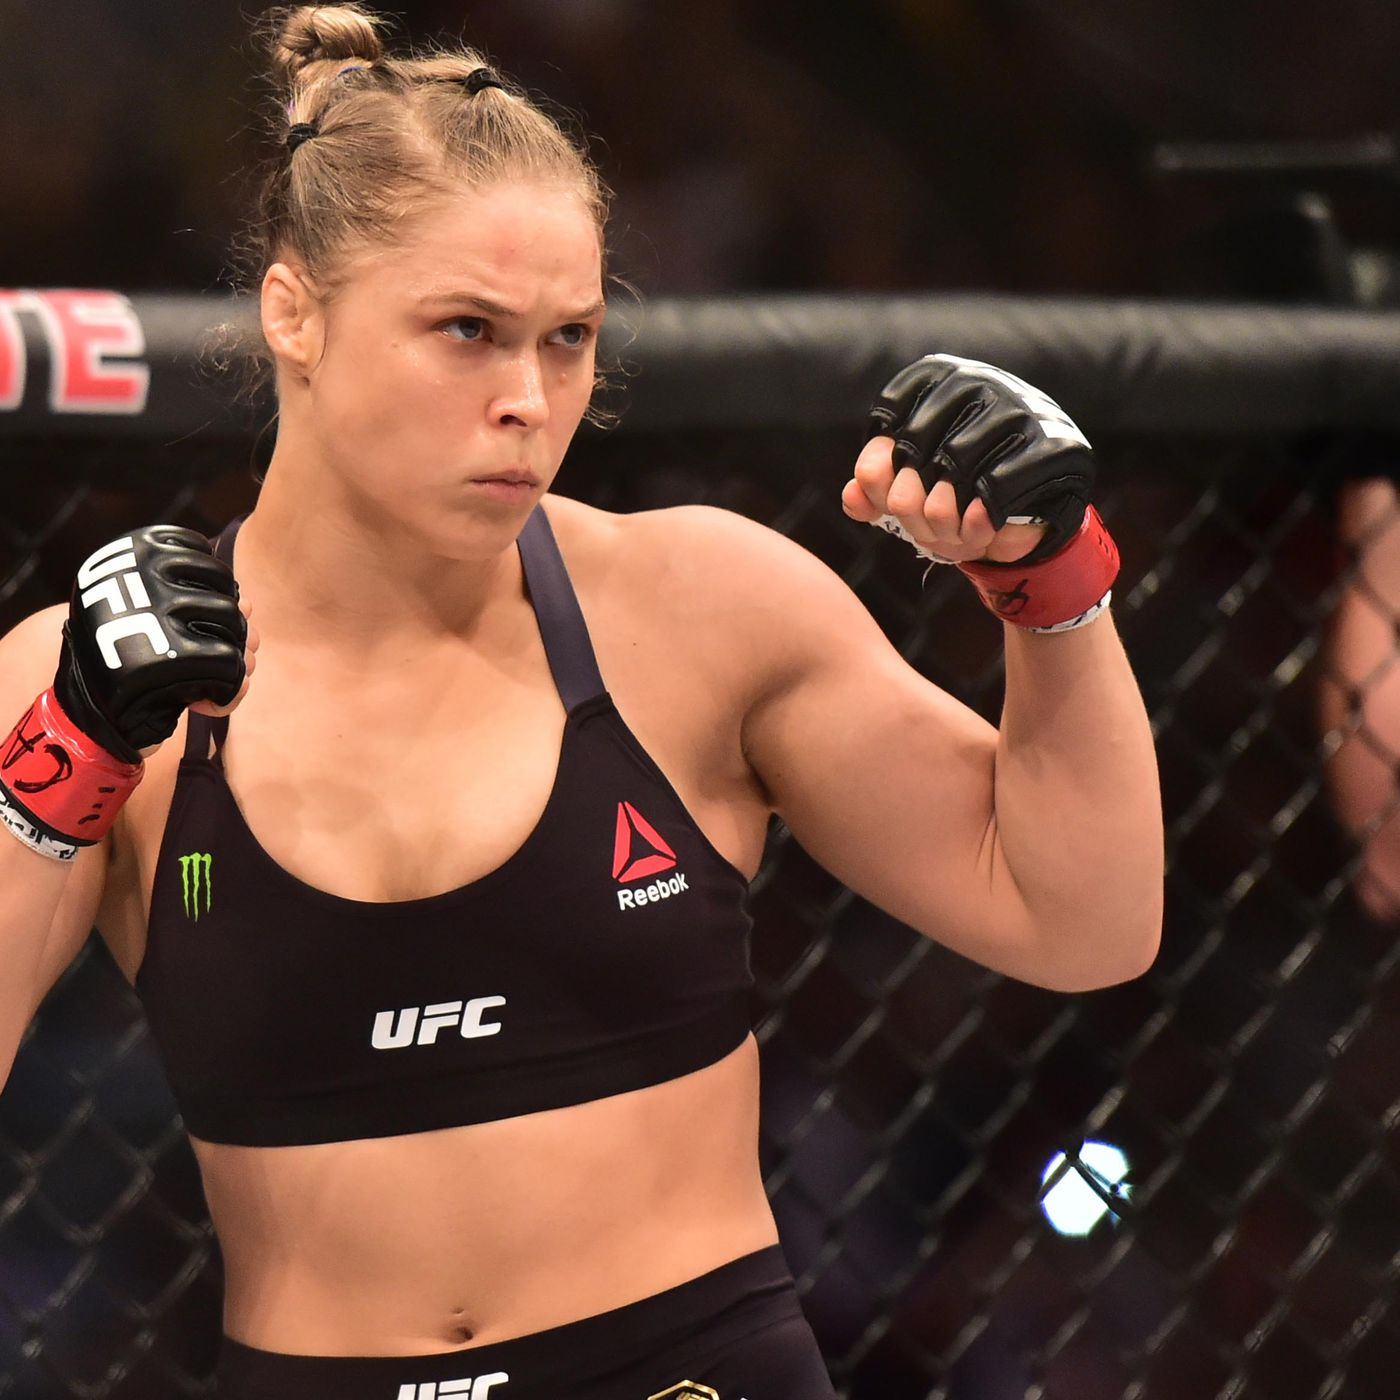 Betting odds ufc 193 fight bid 1280 crypto currency